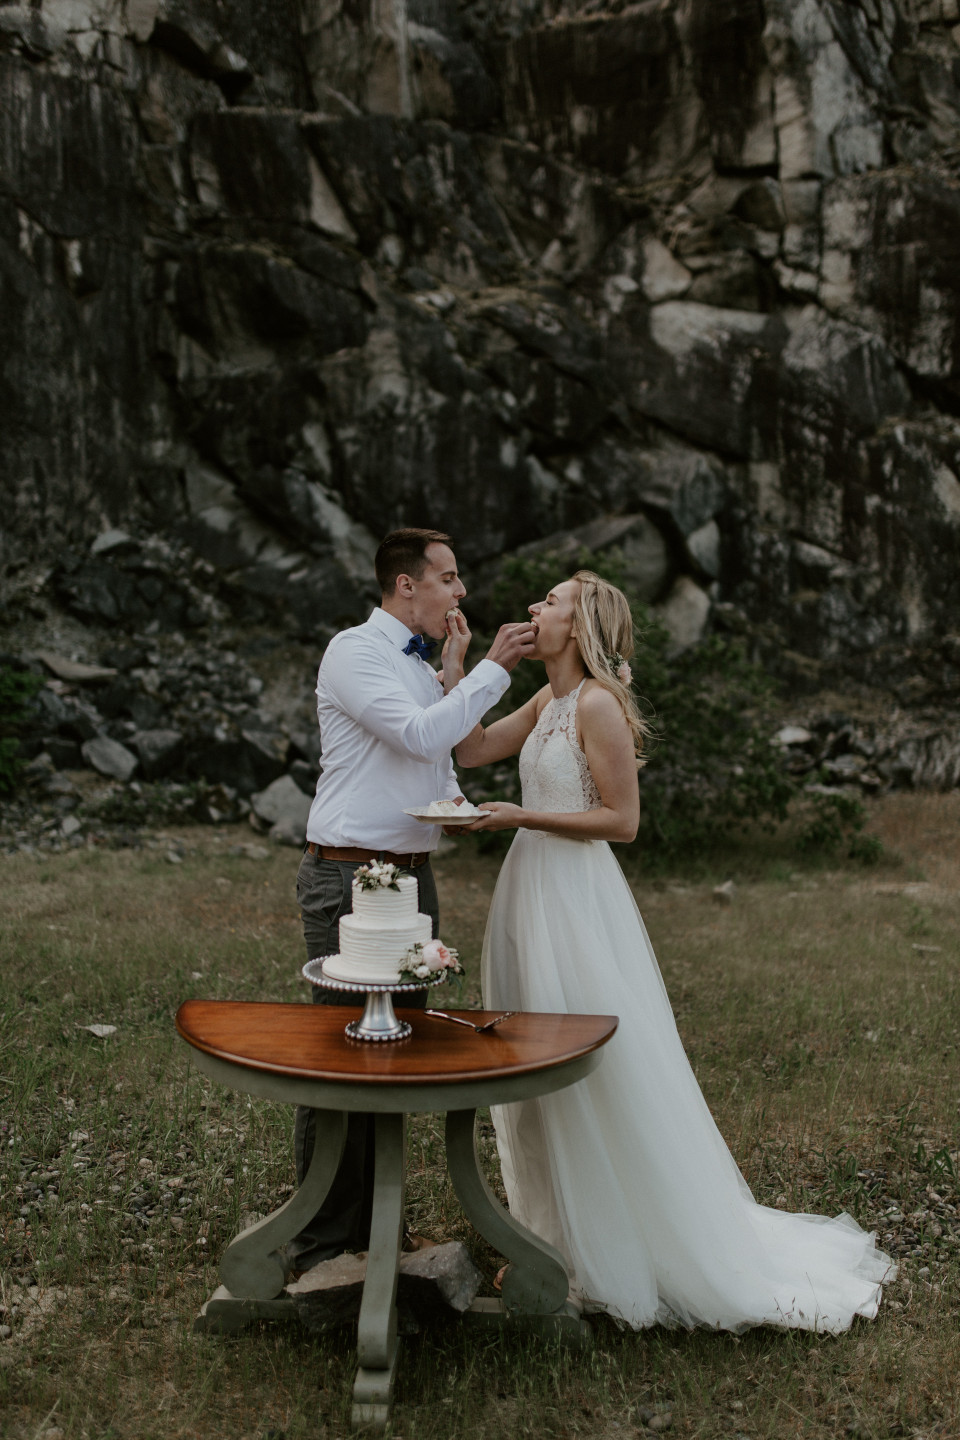 Harper and Trevor feed eachother wedding gake at Cascade Locks at the Columbia Gorge, Oregon. Elopement photography in Portland Oregon by Sienna Plus Josh.